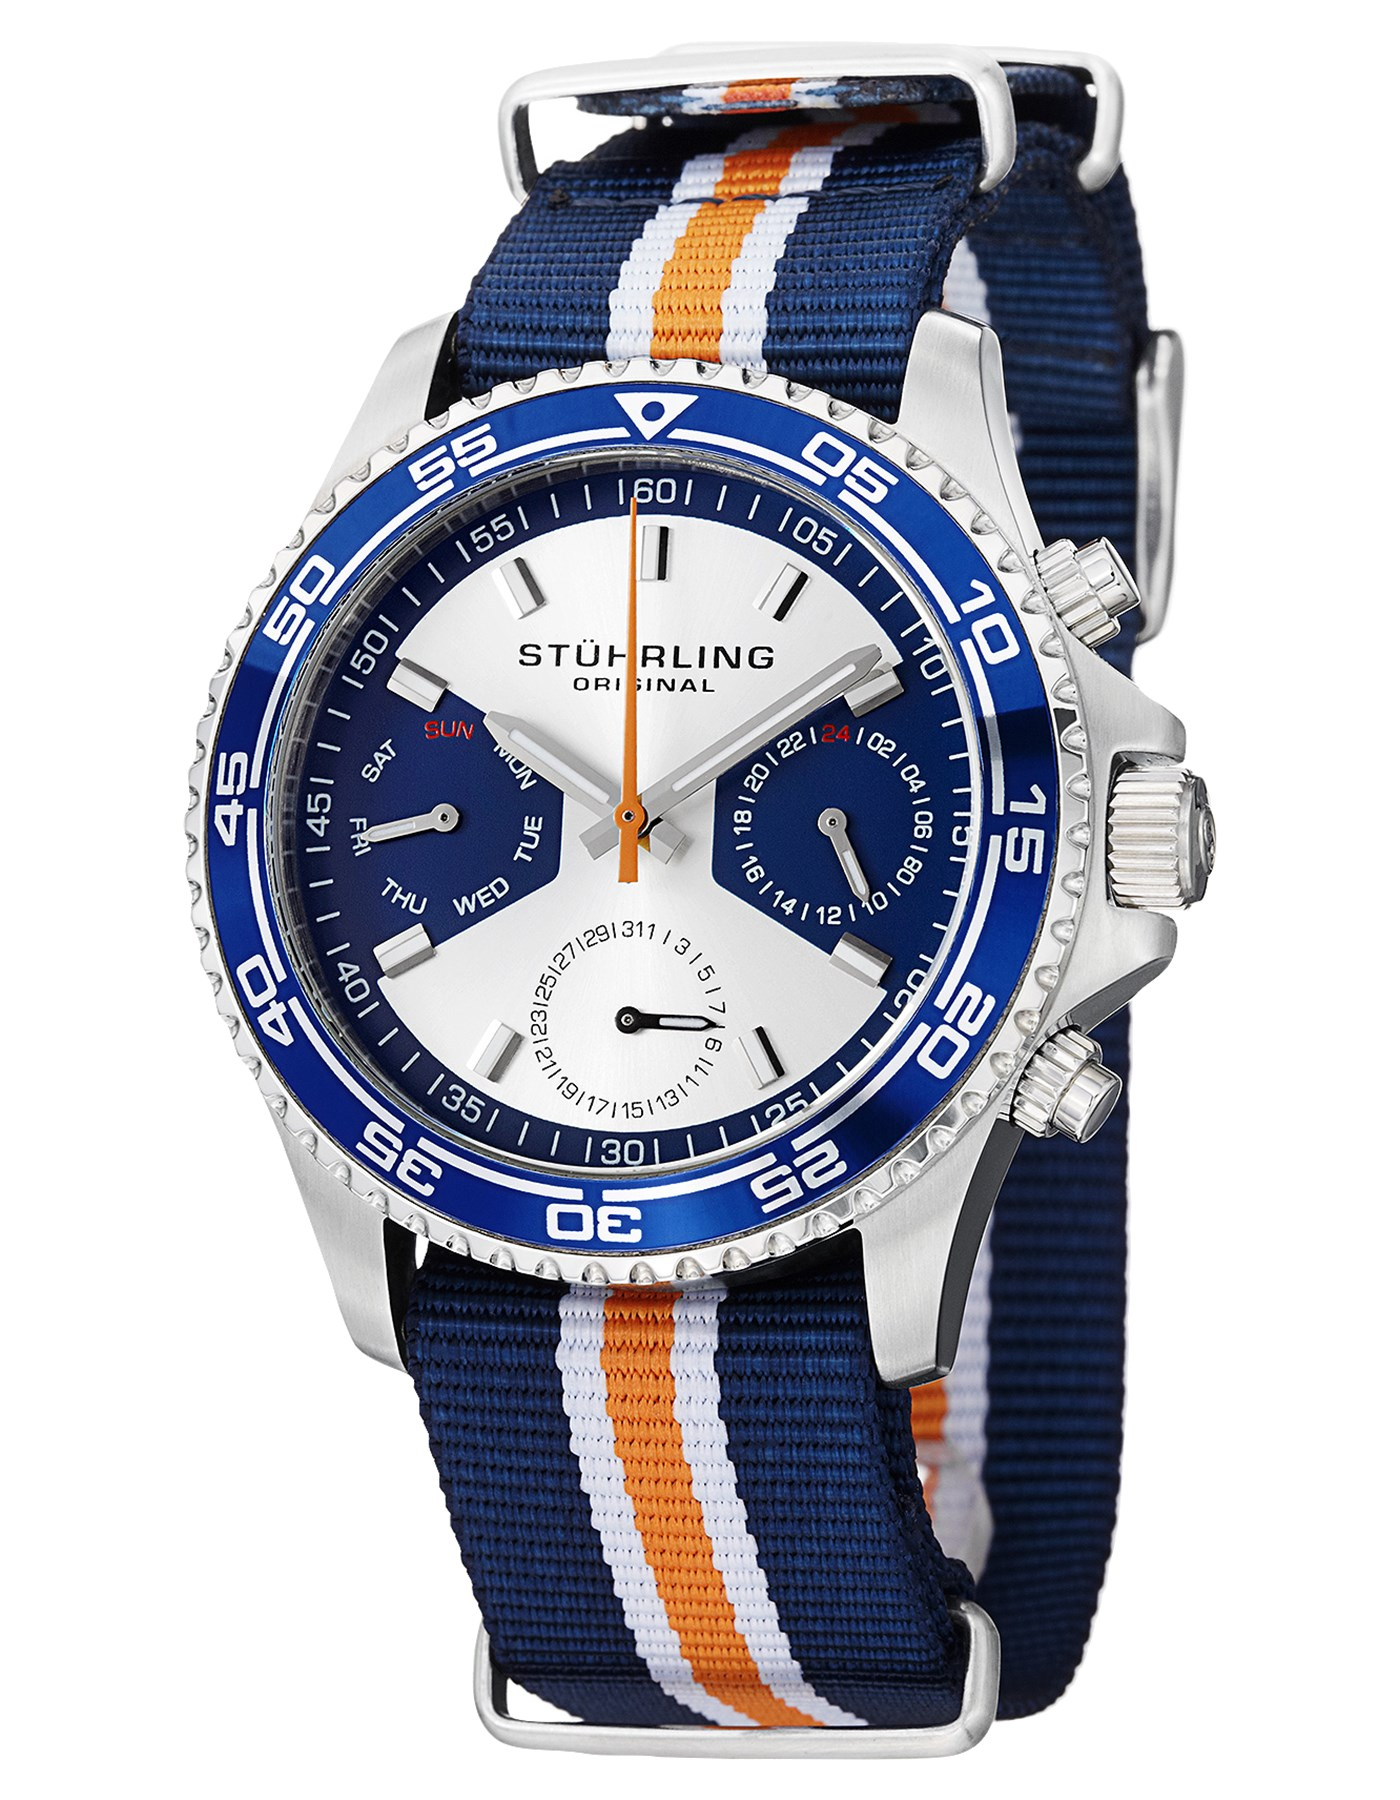 2016 Stuhrling Watches model